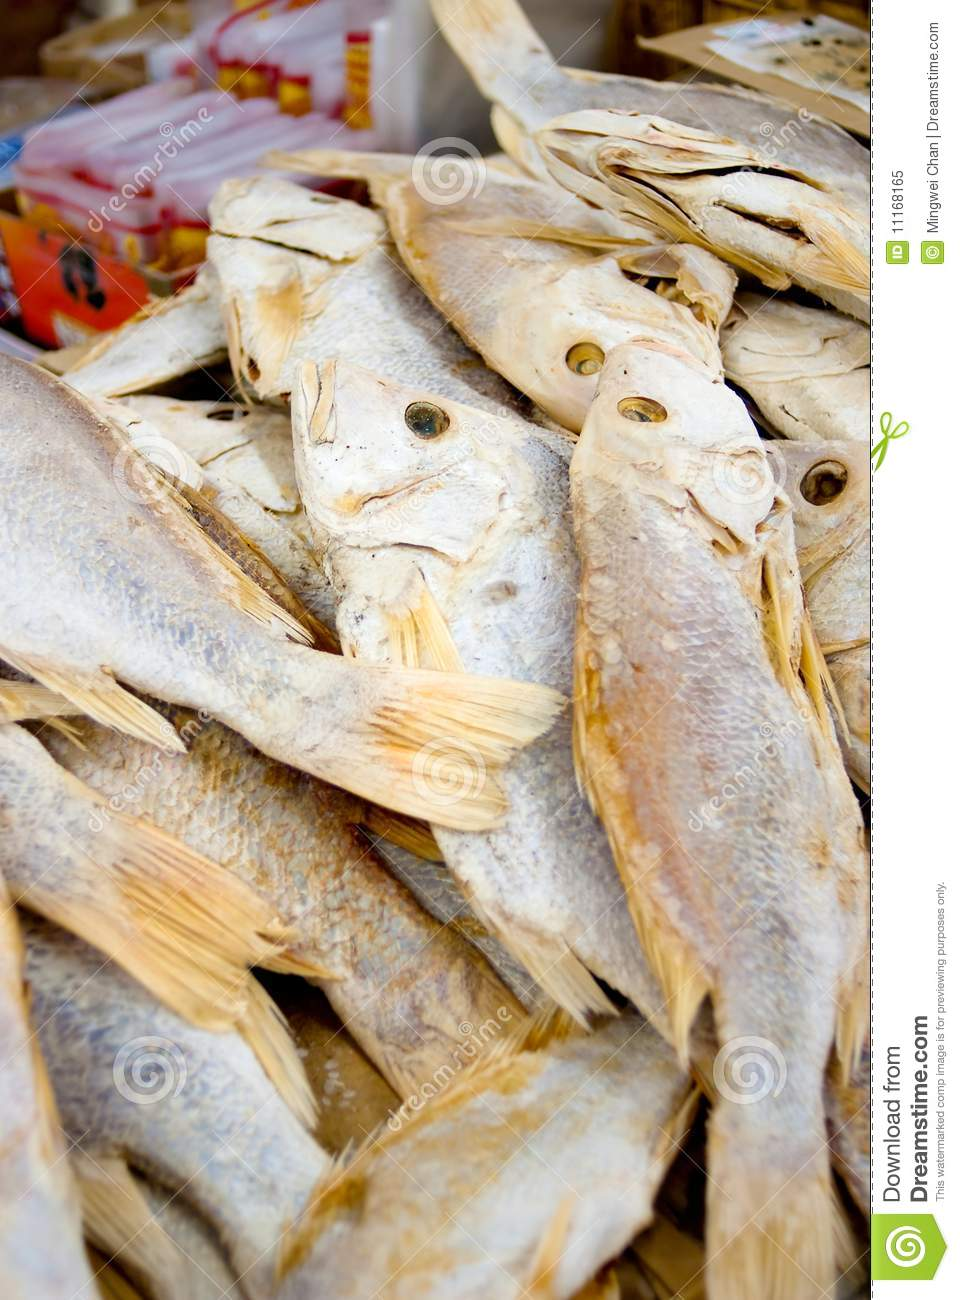 Dried salted fish series 3 royalty free stock photo for Dried salted fish